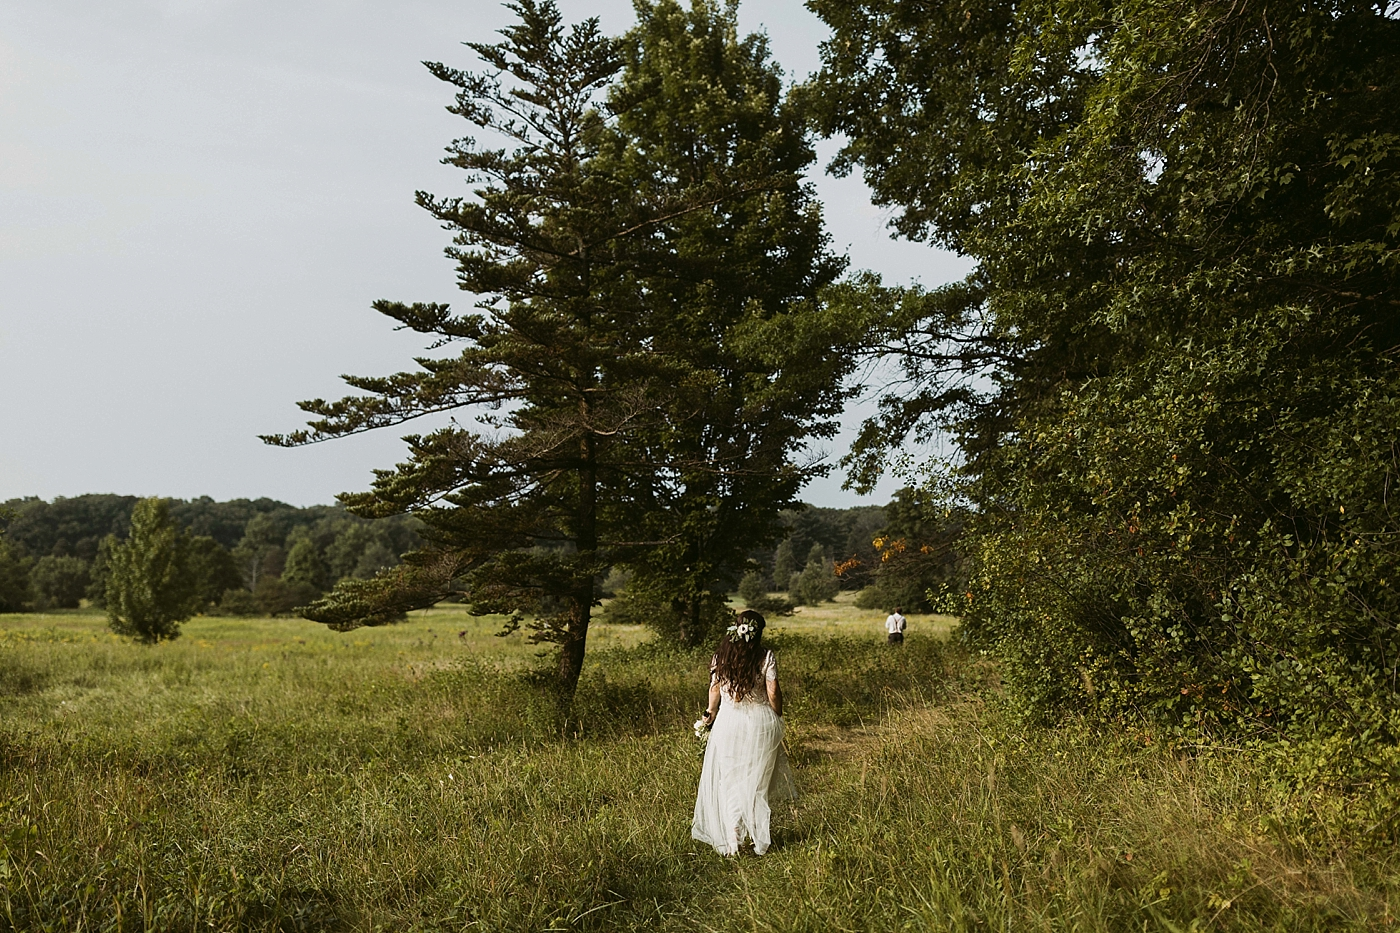 Meadow-Elopement-Ashley+Ben_MJPHOTO2018-57.jpg